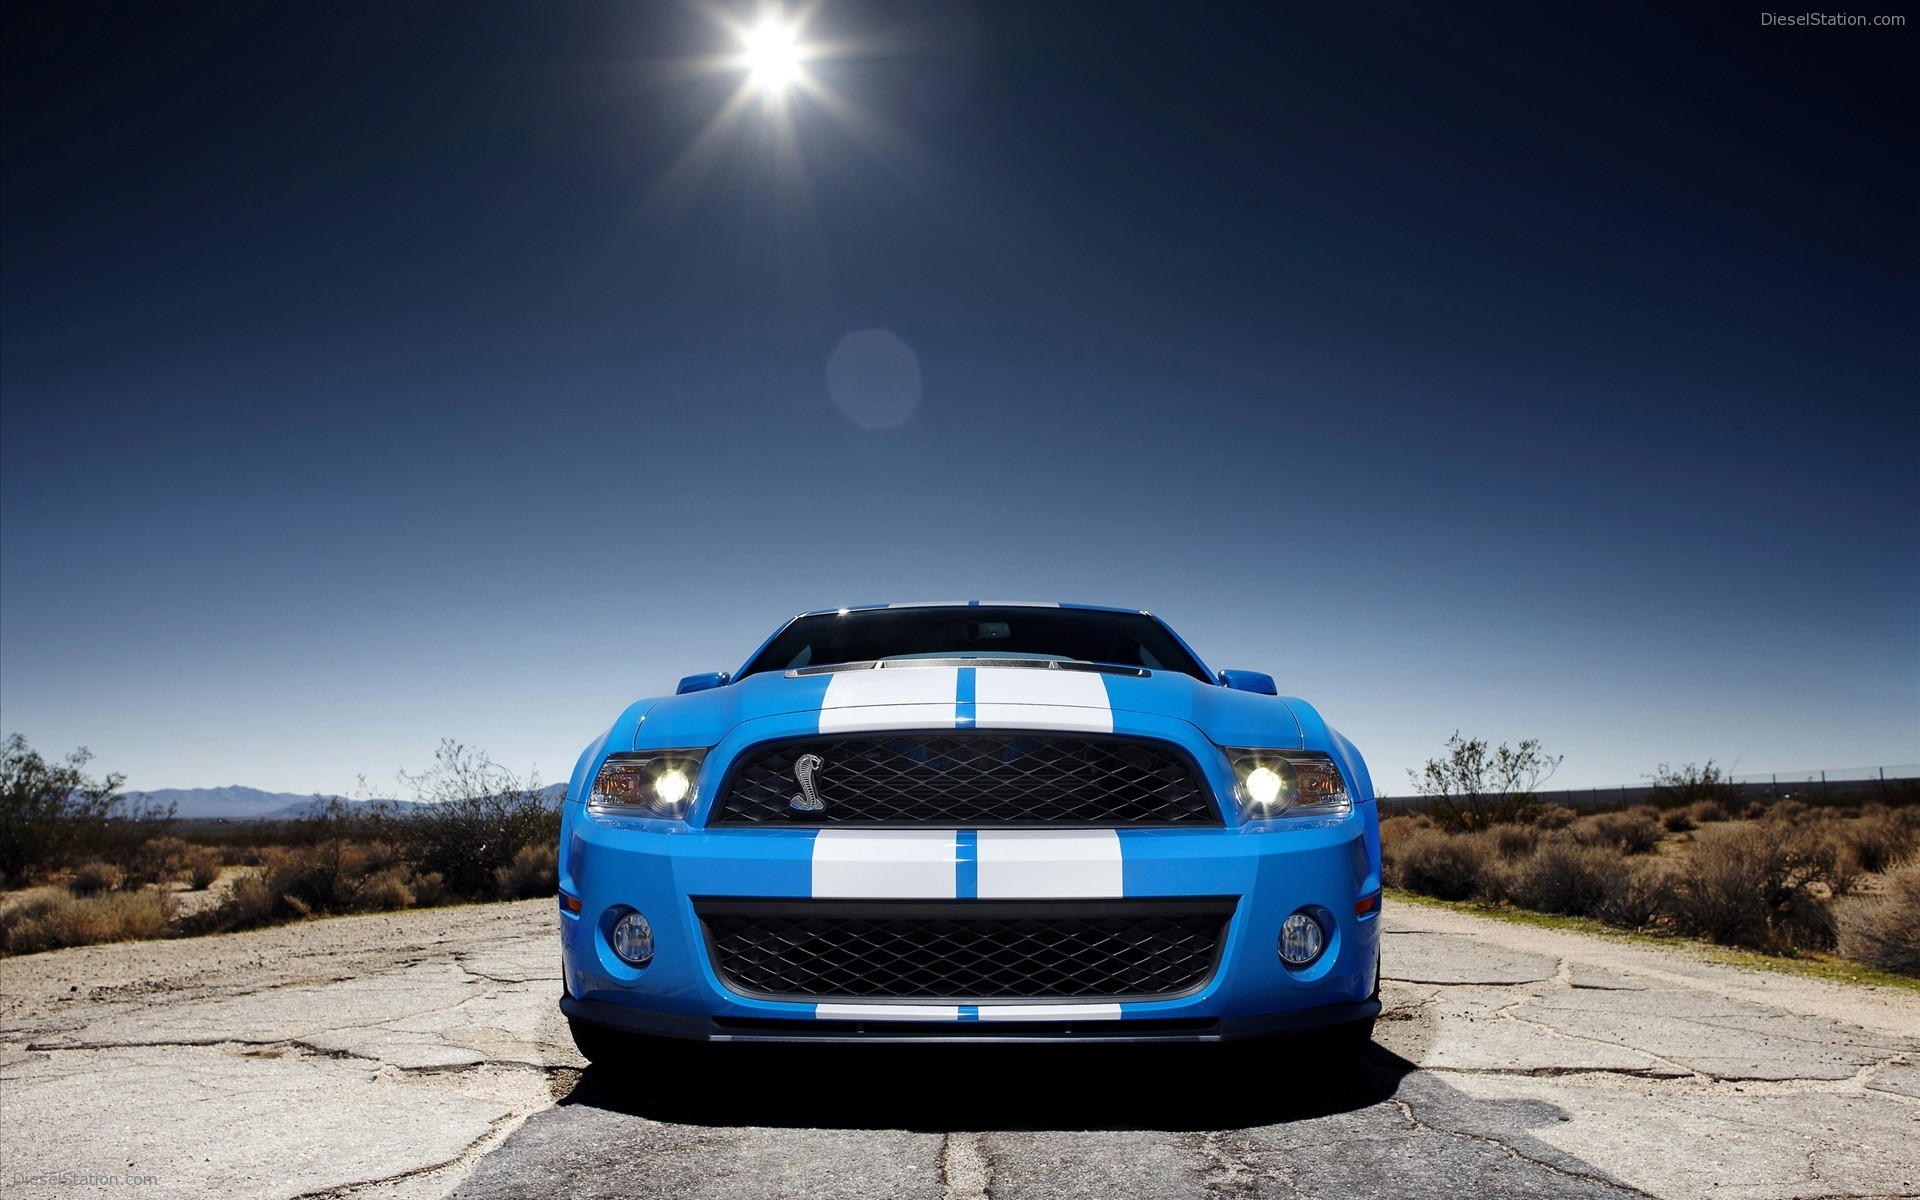 540 HP Widescreen Exotic Car Wallpaper 03 of 24 Diesel Station 1920x1200